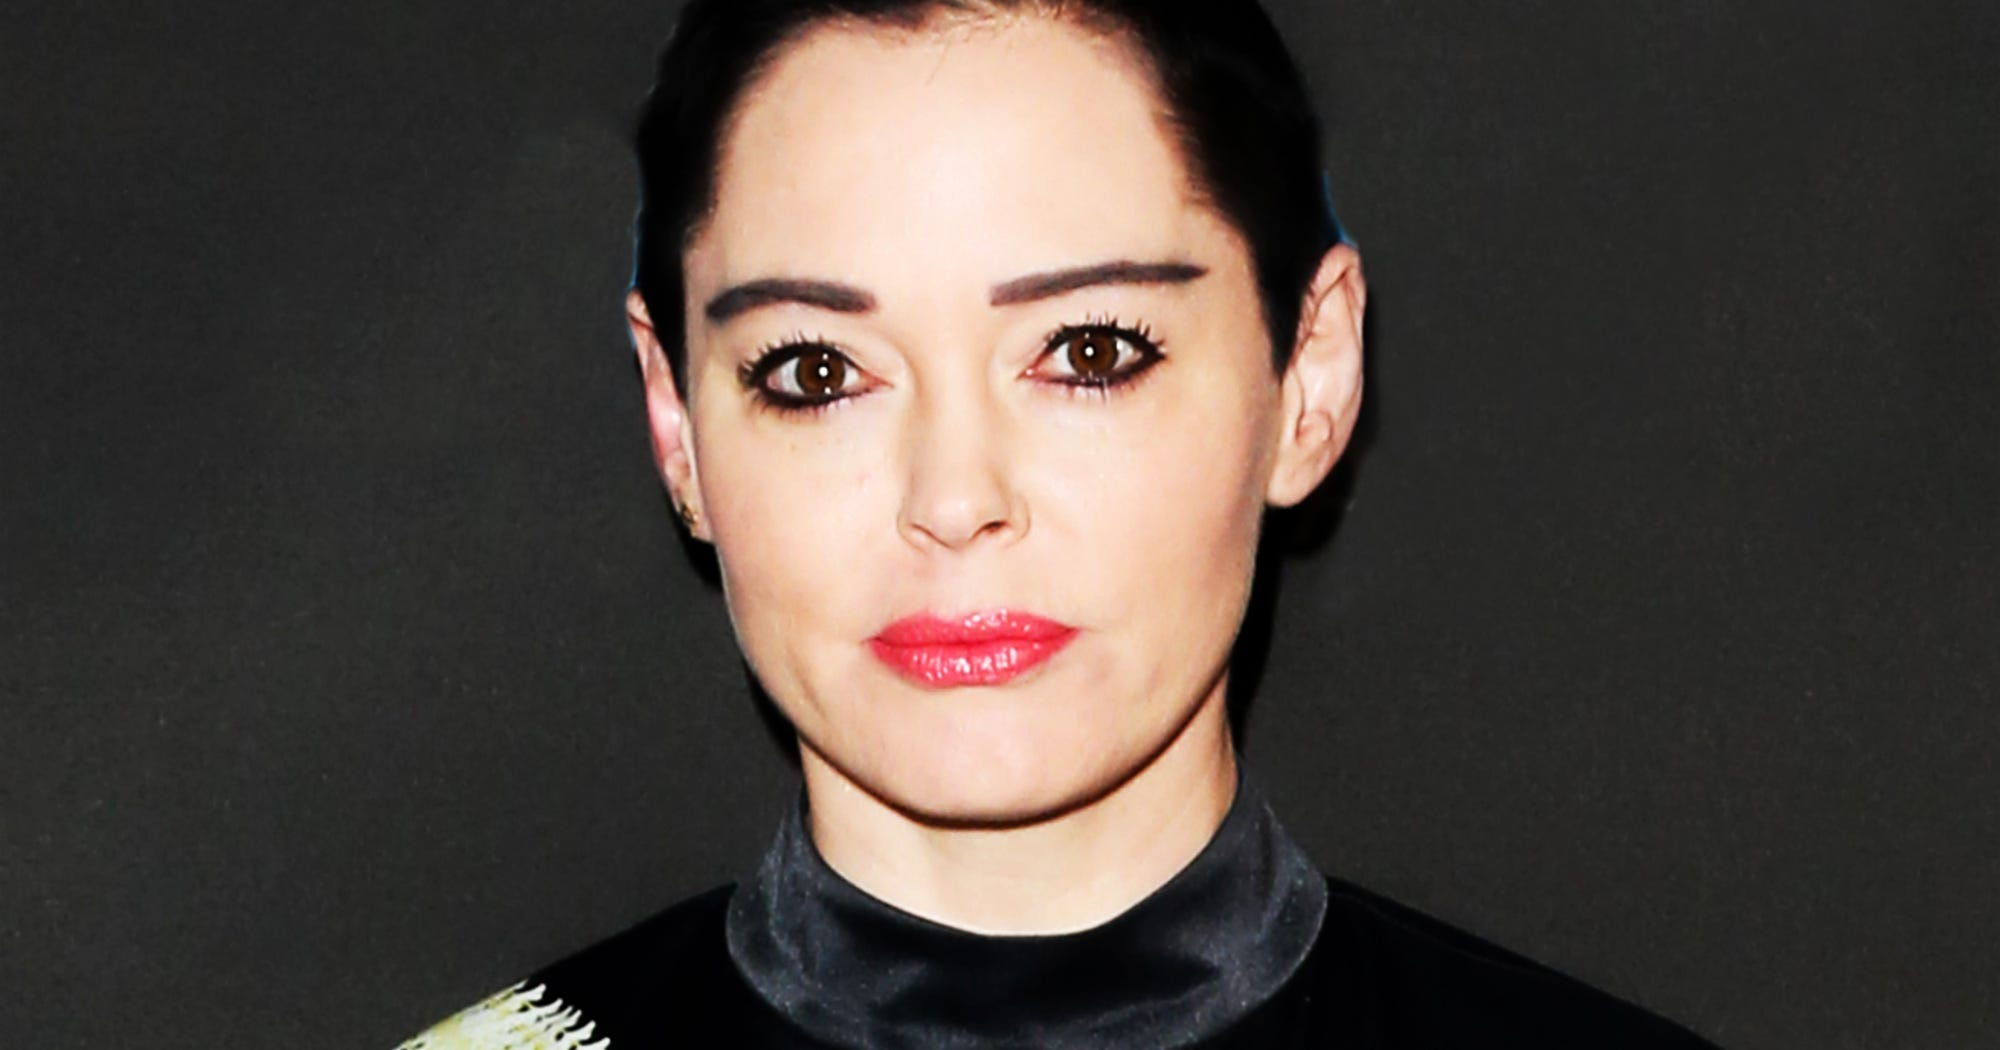 Rose McGowan Definitively Names Harvey Weinstein As Her Rapist For The First Time